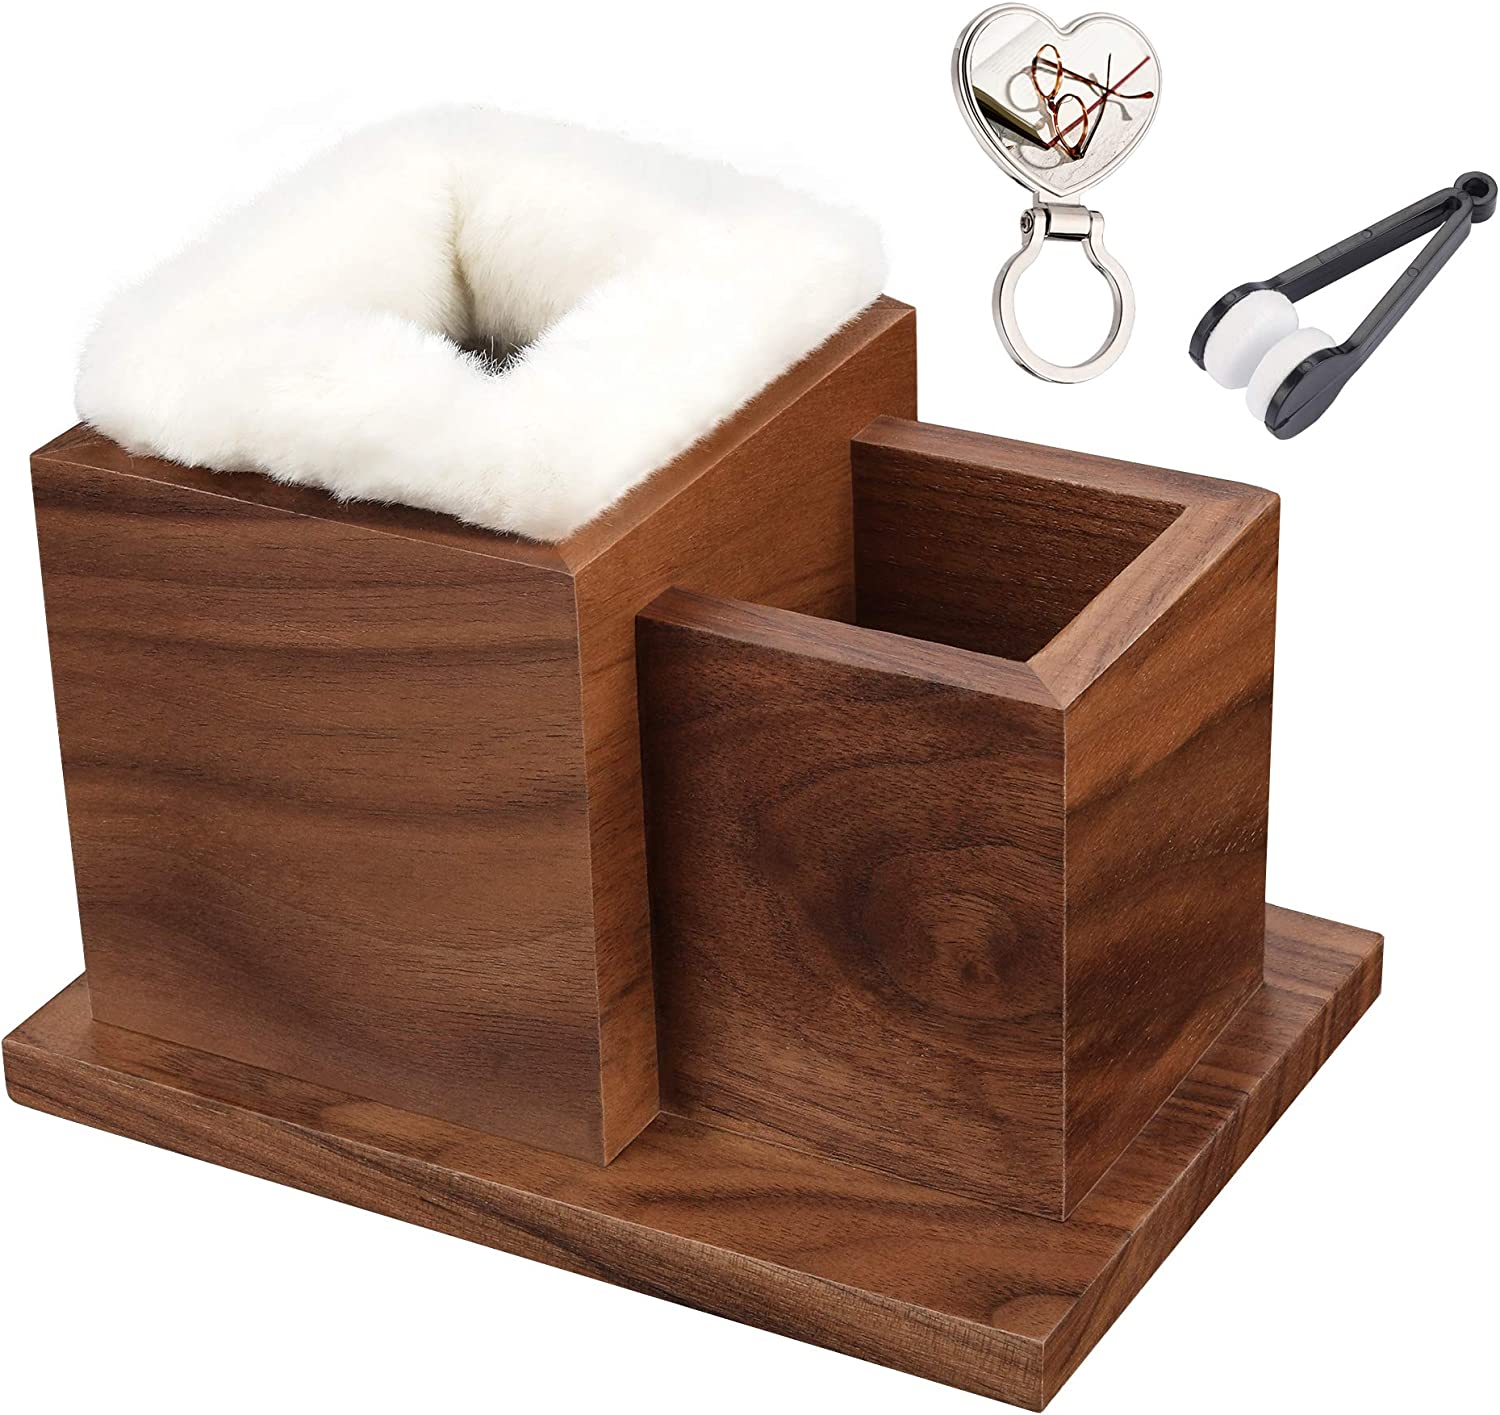 Elm Plush Lined Eyeglasses Holder Stand Natural Walnut Wood with Brooch and Microfiber Cleaner Soft Brush